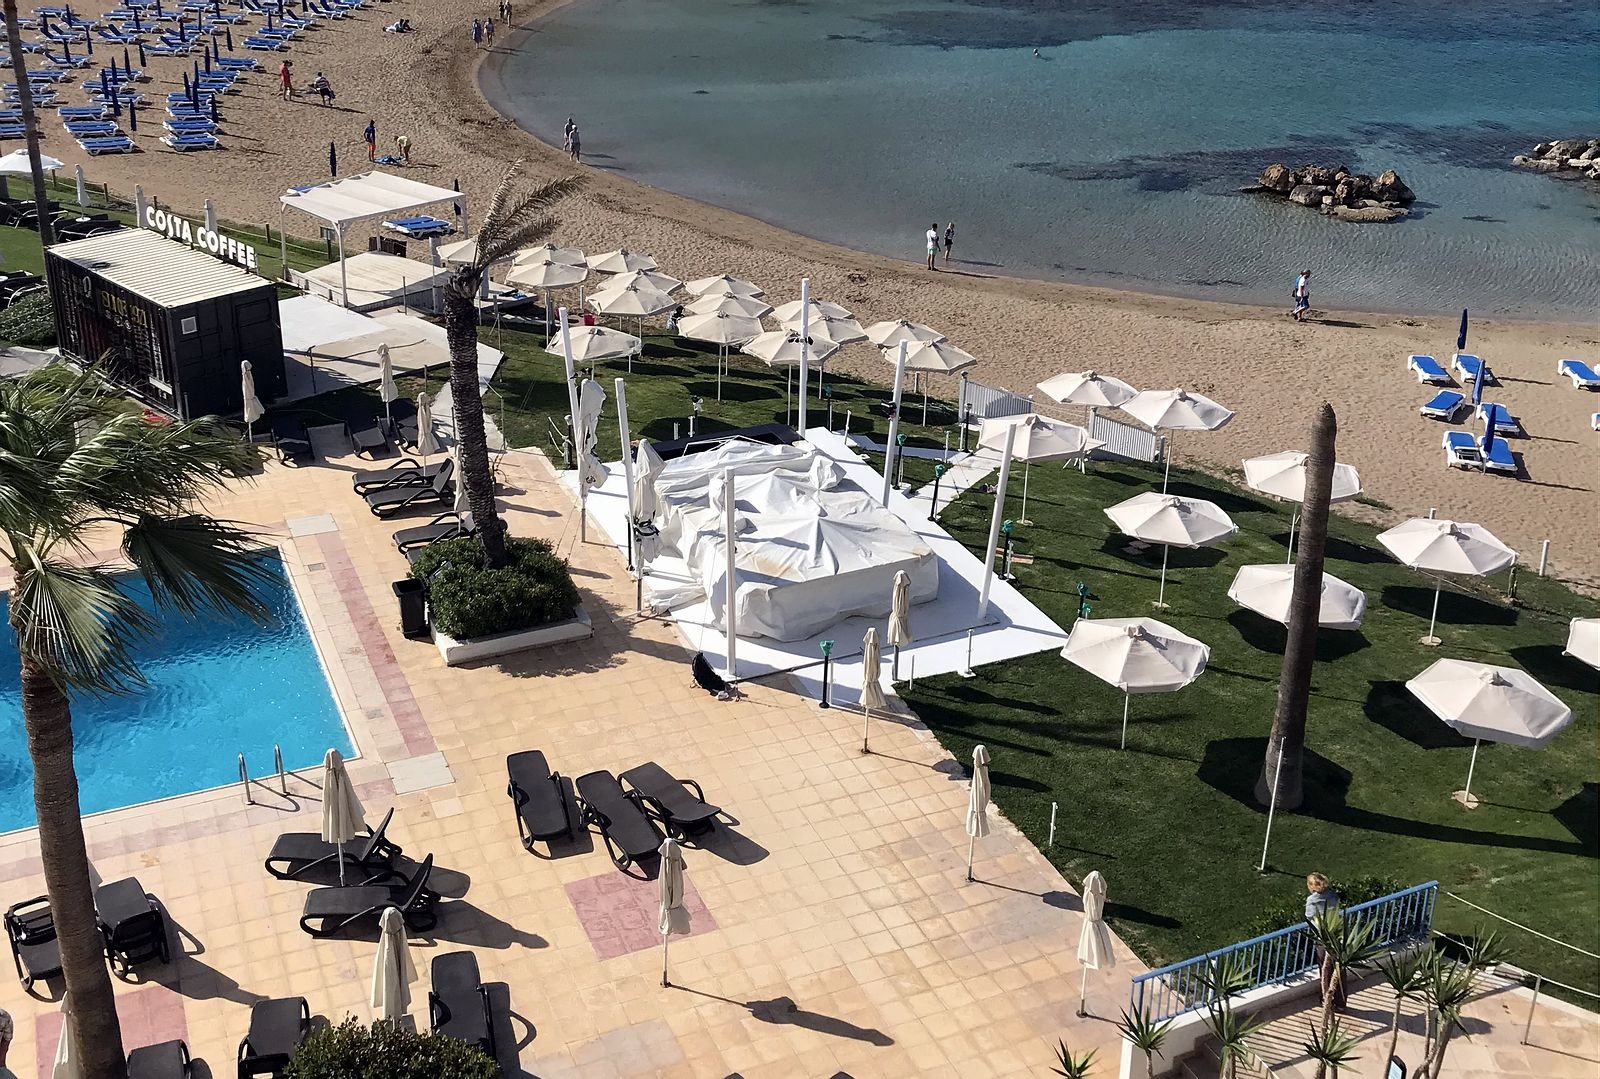 Cyprus. Pola Costa hotel pool and beach view.